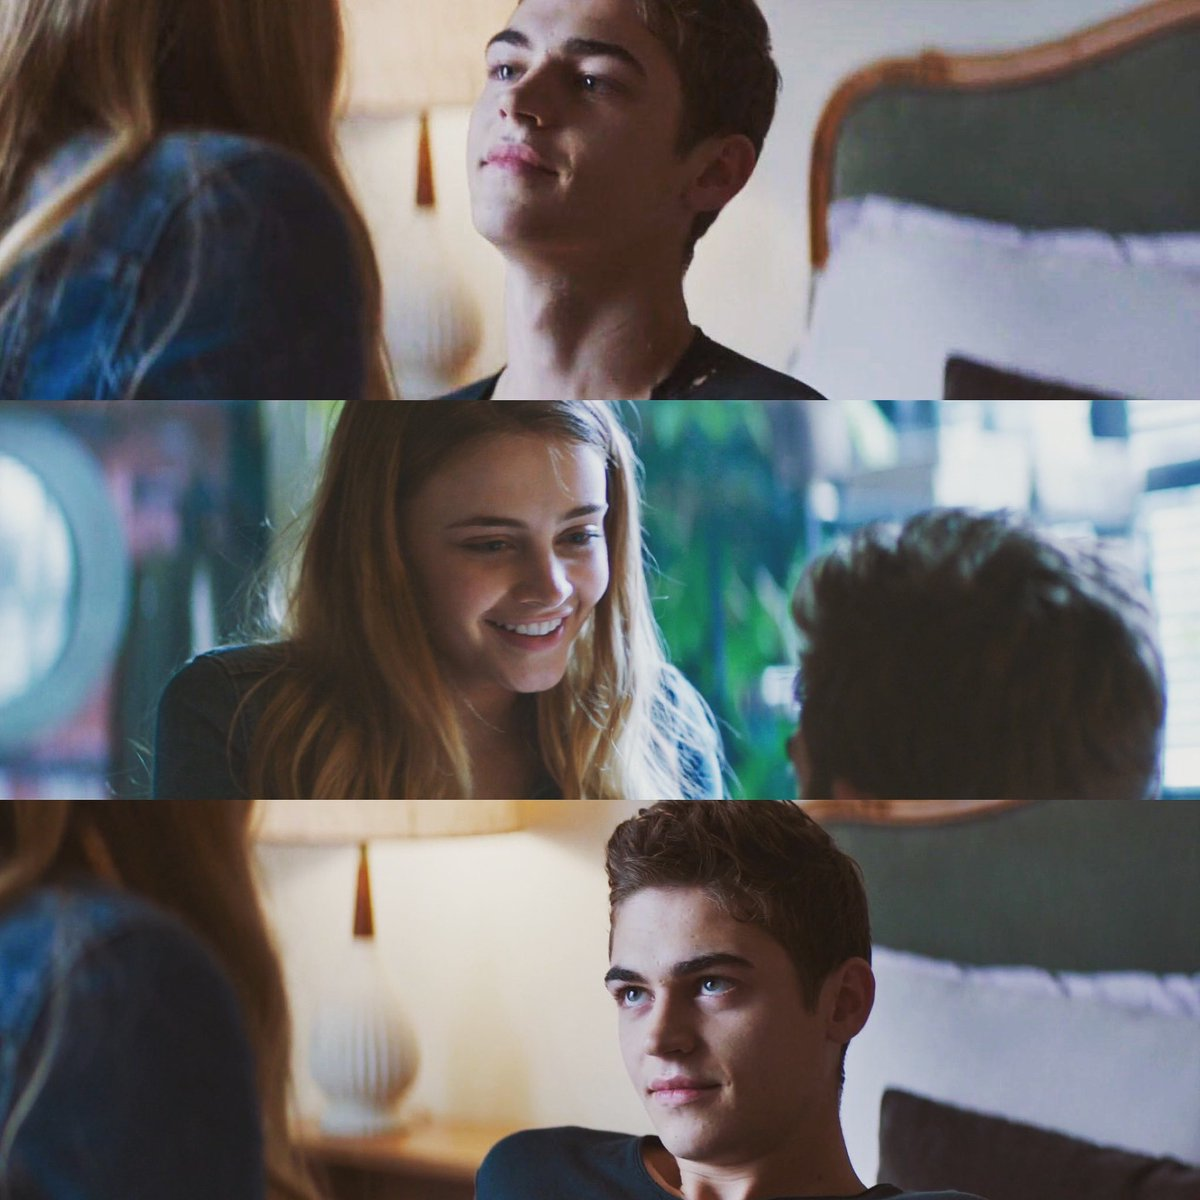 «I am not romantic.» «Yes, you most certainly are. That letter was one for the classics.» Hardin and Tessa #afterwecollided #hardinscott #tessayoung #hessa #herofiennestiffin #josephinelangford #annatoddpic.twitter.com/zt7c9bU4El